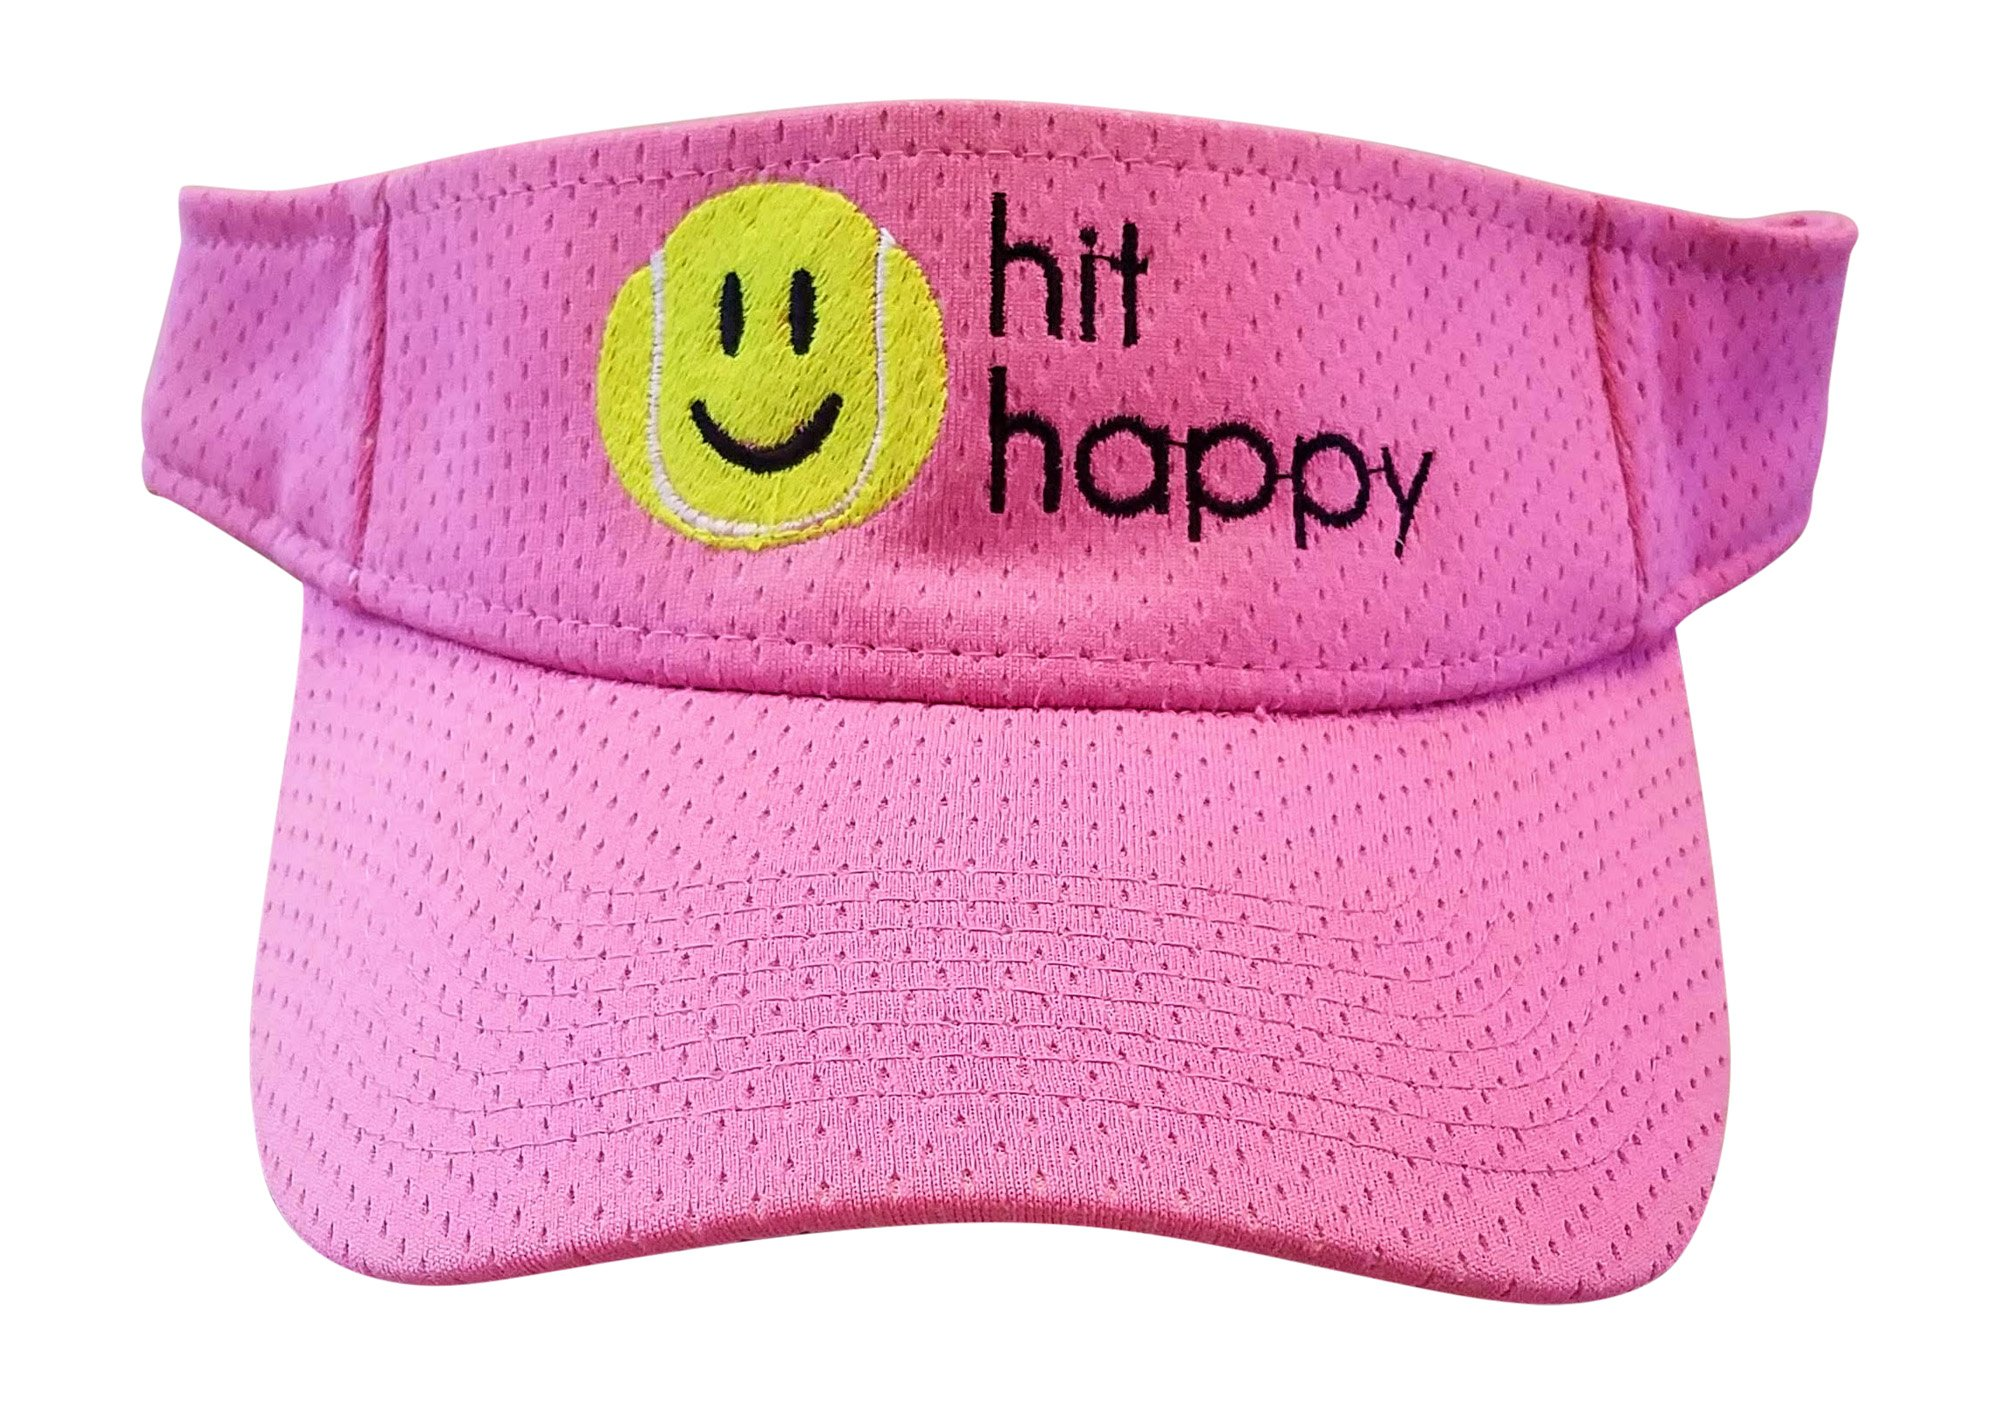 Tennis Happies Tennis Visor Hit Happy, Adjustable Strap, Perfect for On The Court Or Off (Pink), One Size